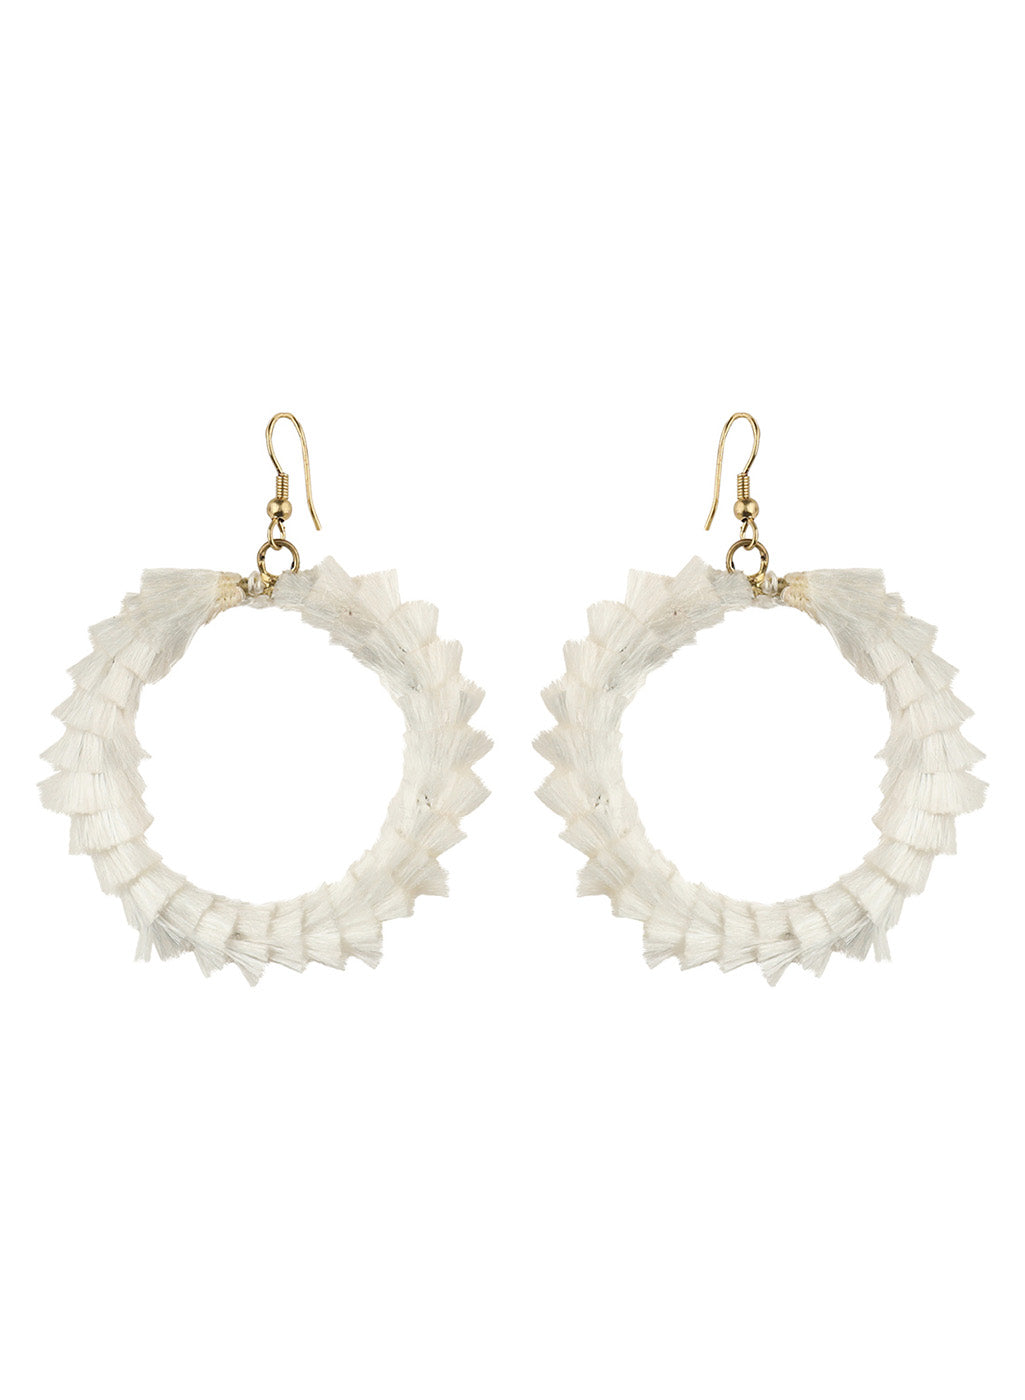 TASSELED OFF WHITE EARING  MAKE YOU LOOK CHIC AND CLASSY